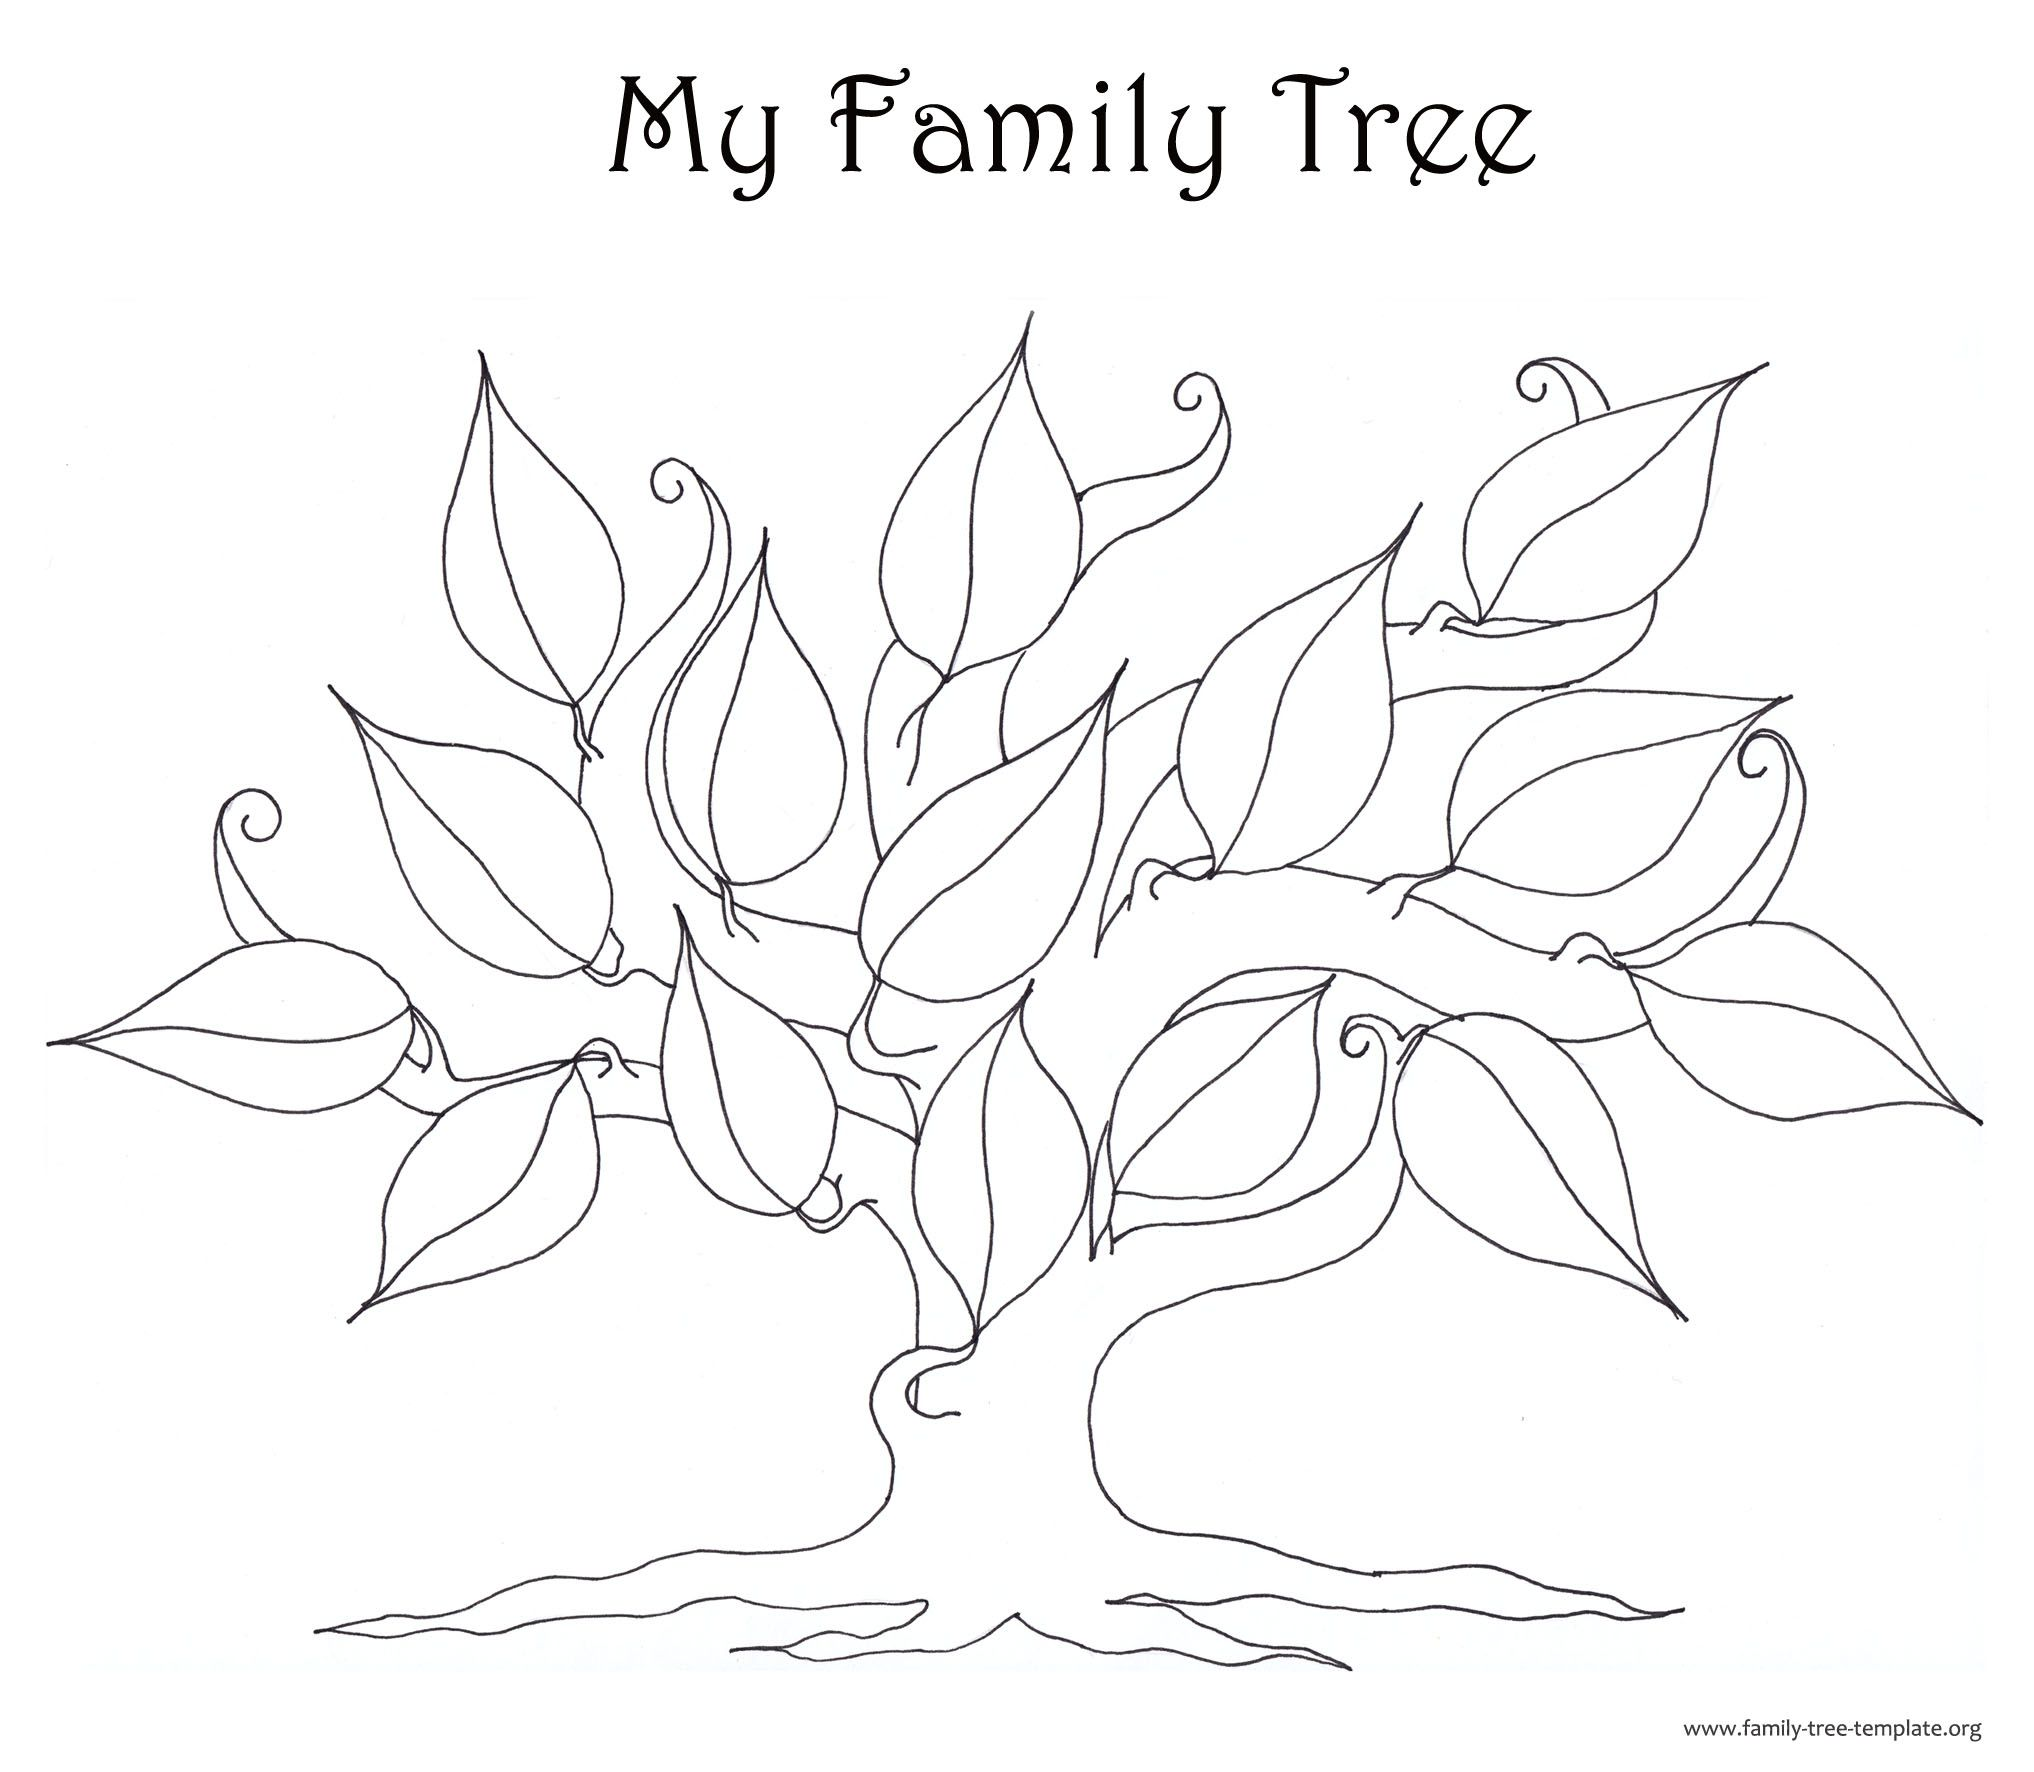 Fun Tree Coloring For Kids Blank Coloring Pages Family Tree